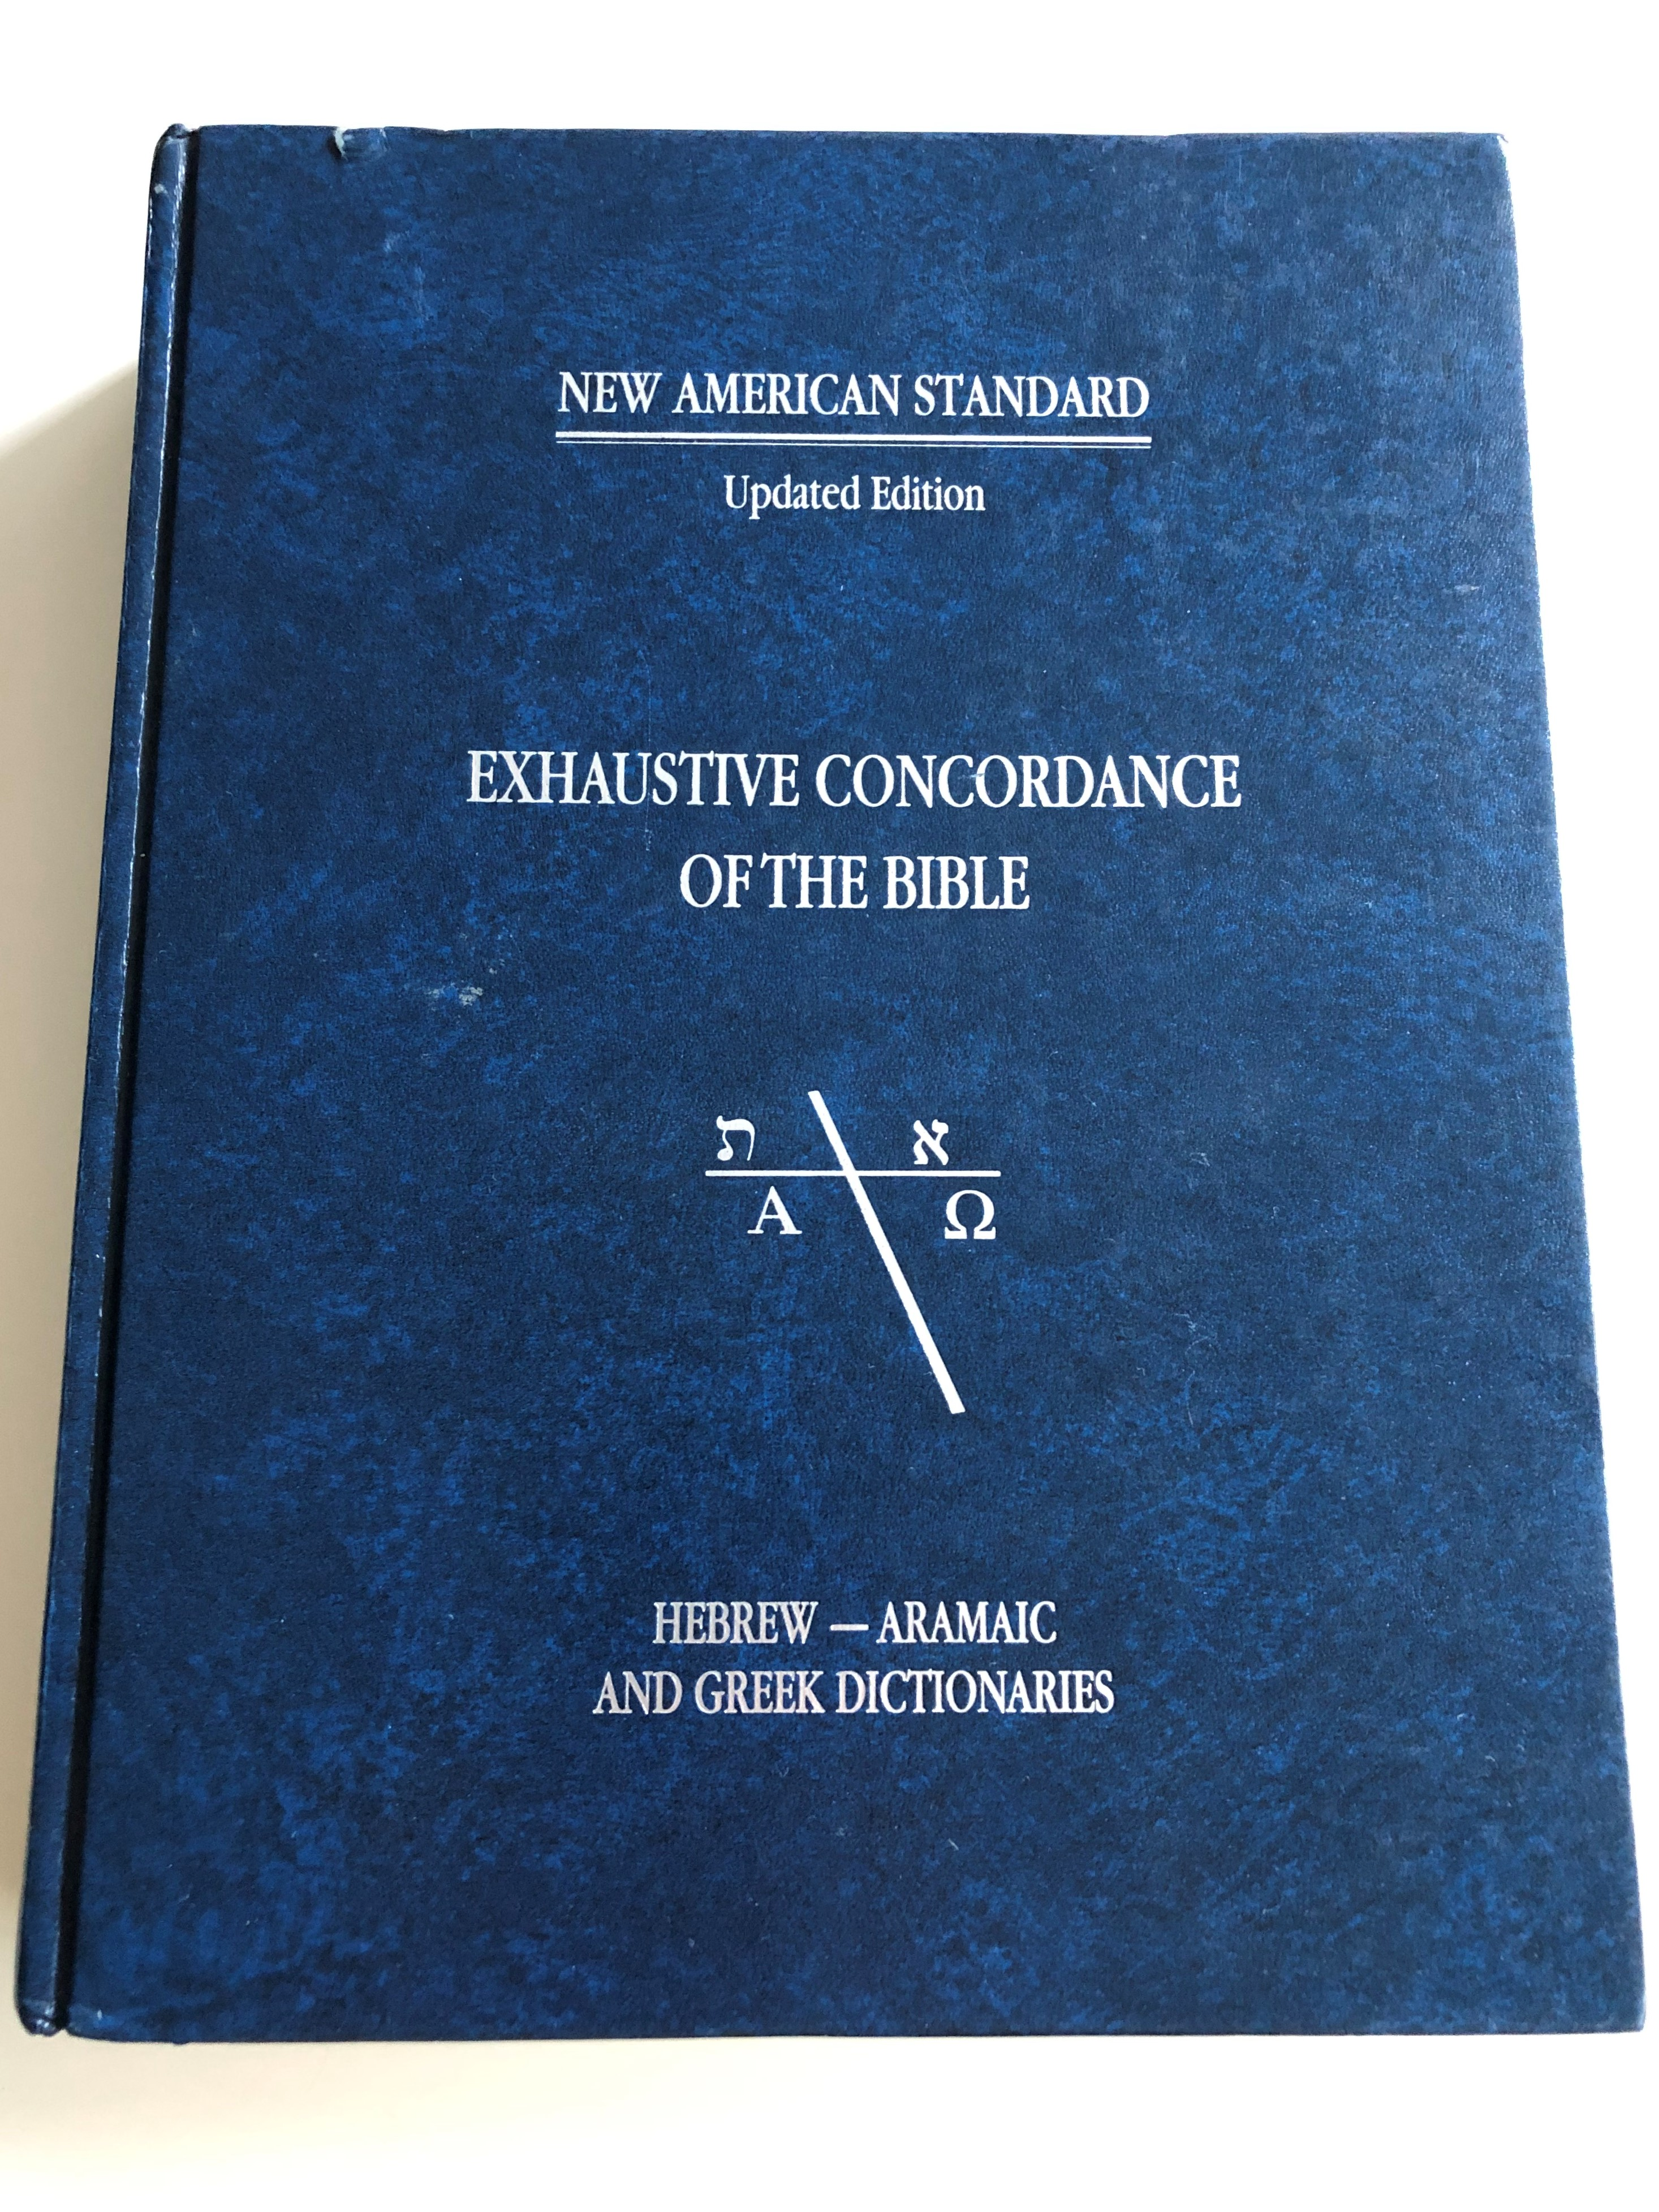 exhaustive-concordance-of-the-bible-for-new-american-standard-updated-edition-nasb-hebrew-aramaic-and-greek-dictionaries-lockman-foundation-1998-hardcover-1-.jpg